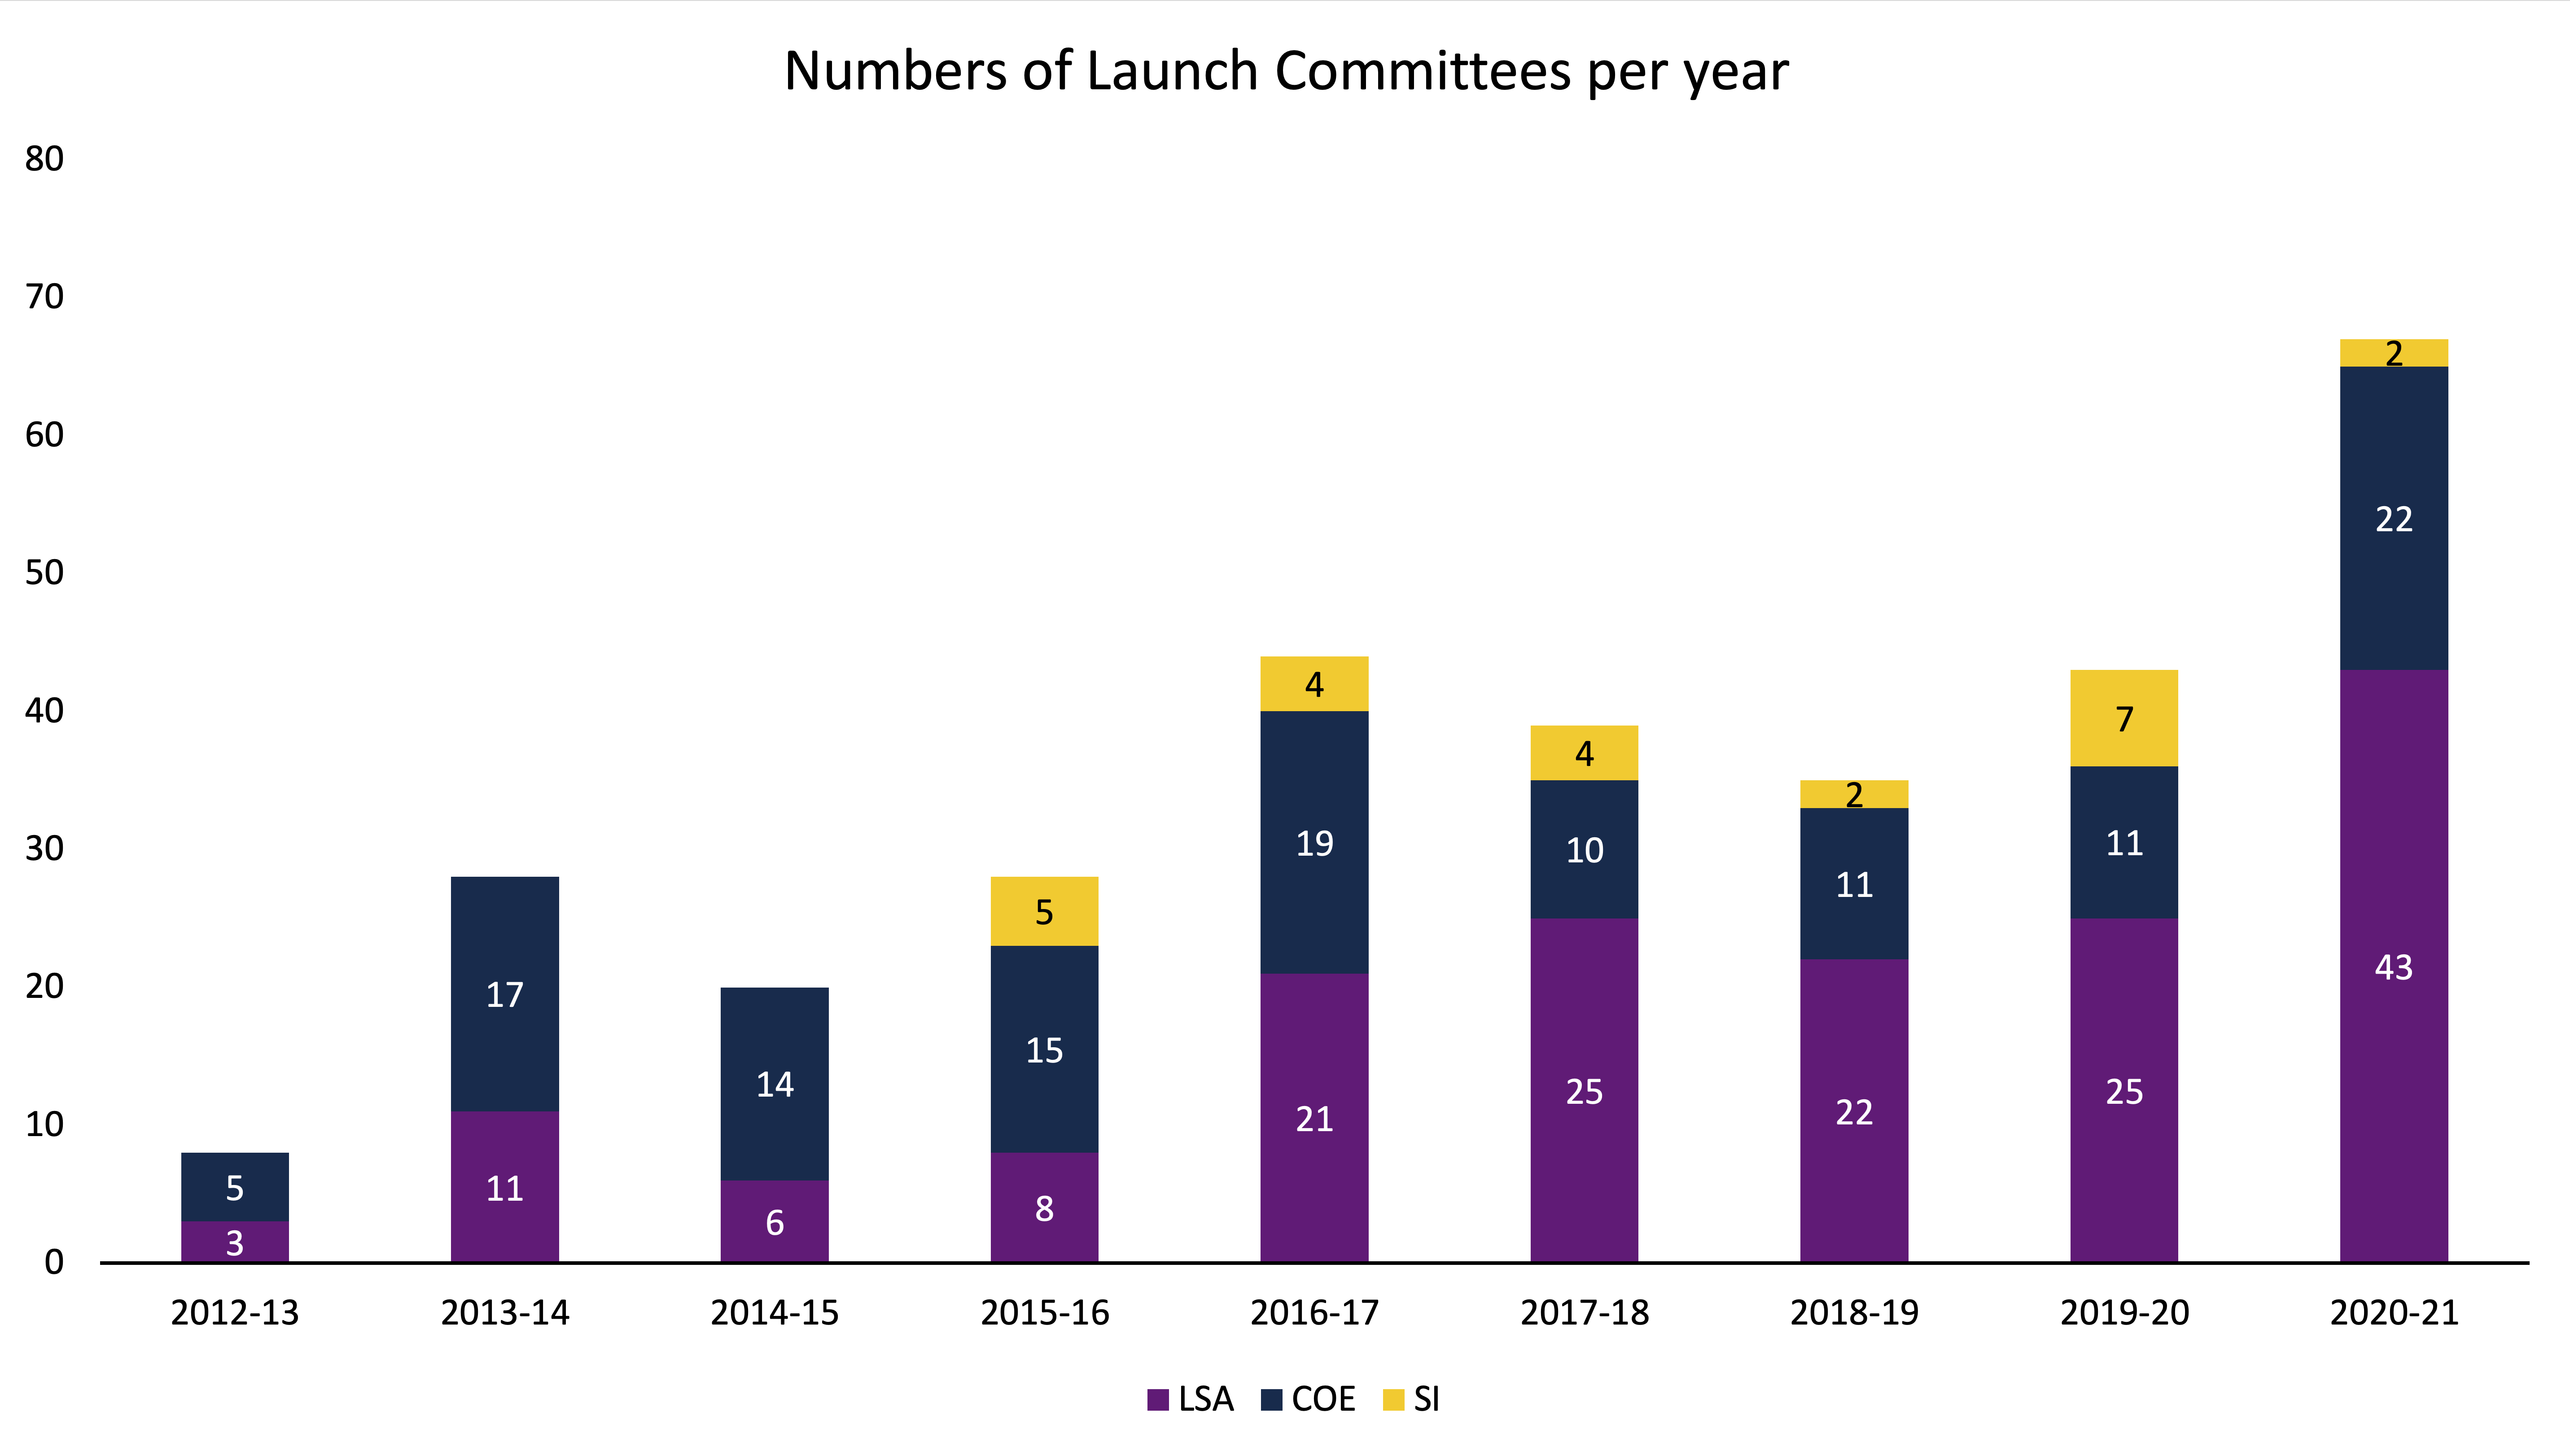 Number of Launch Committees per year